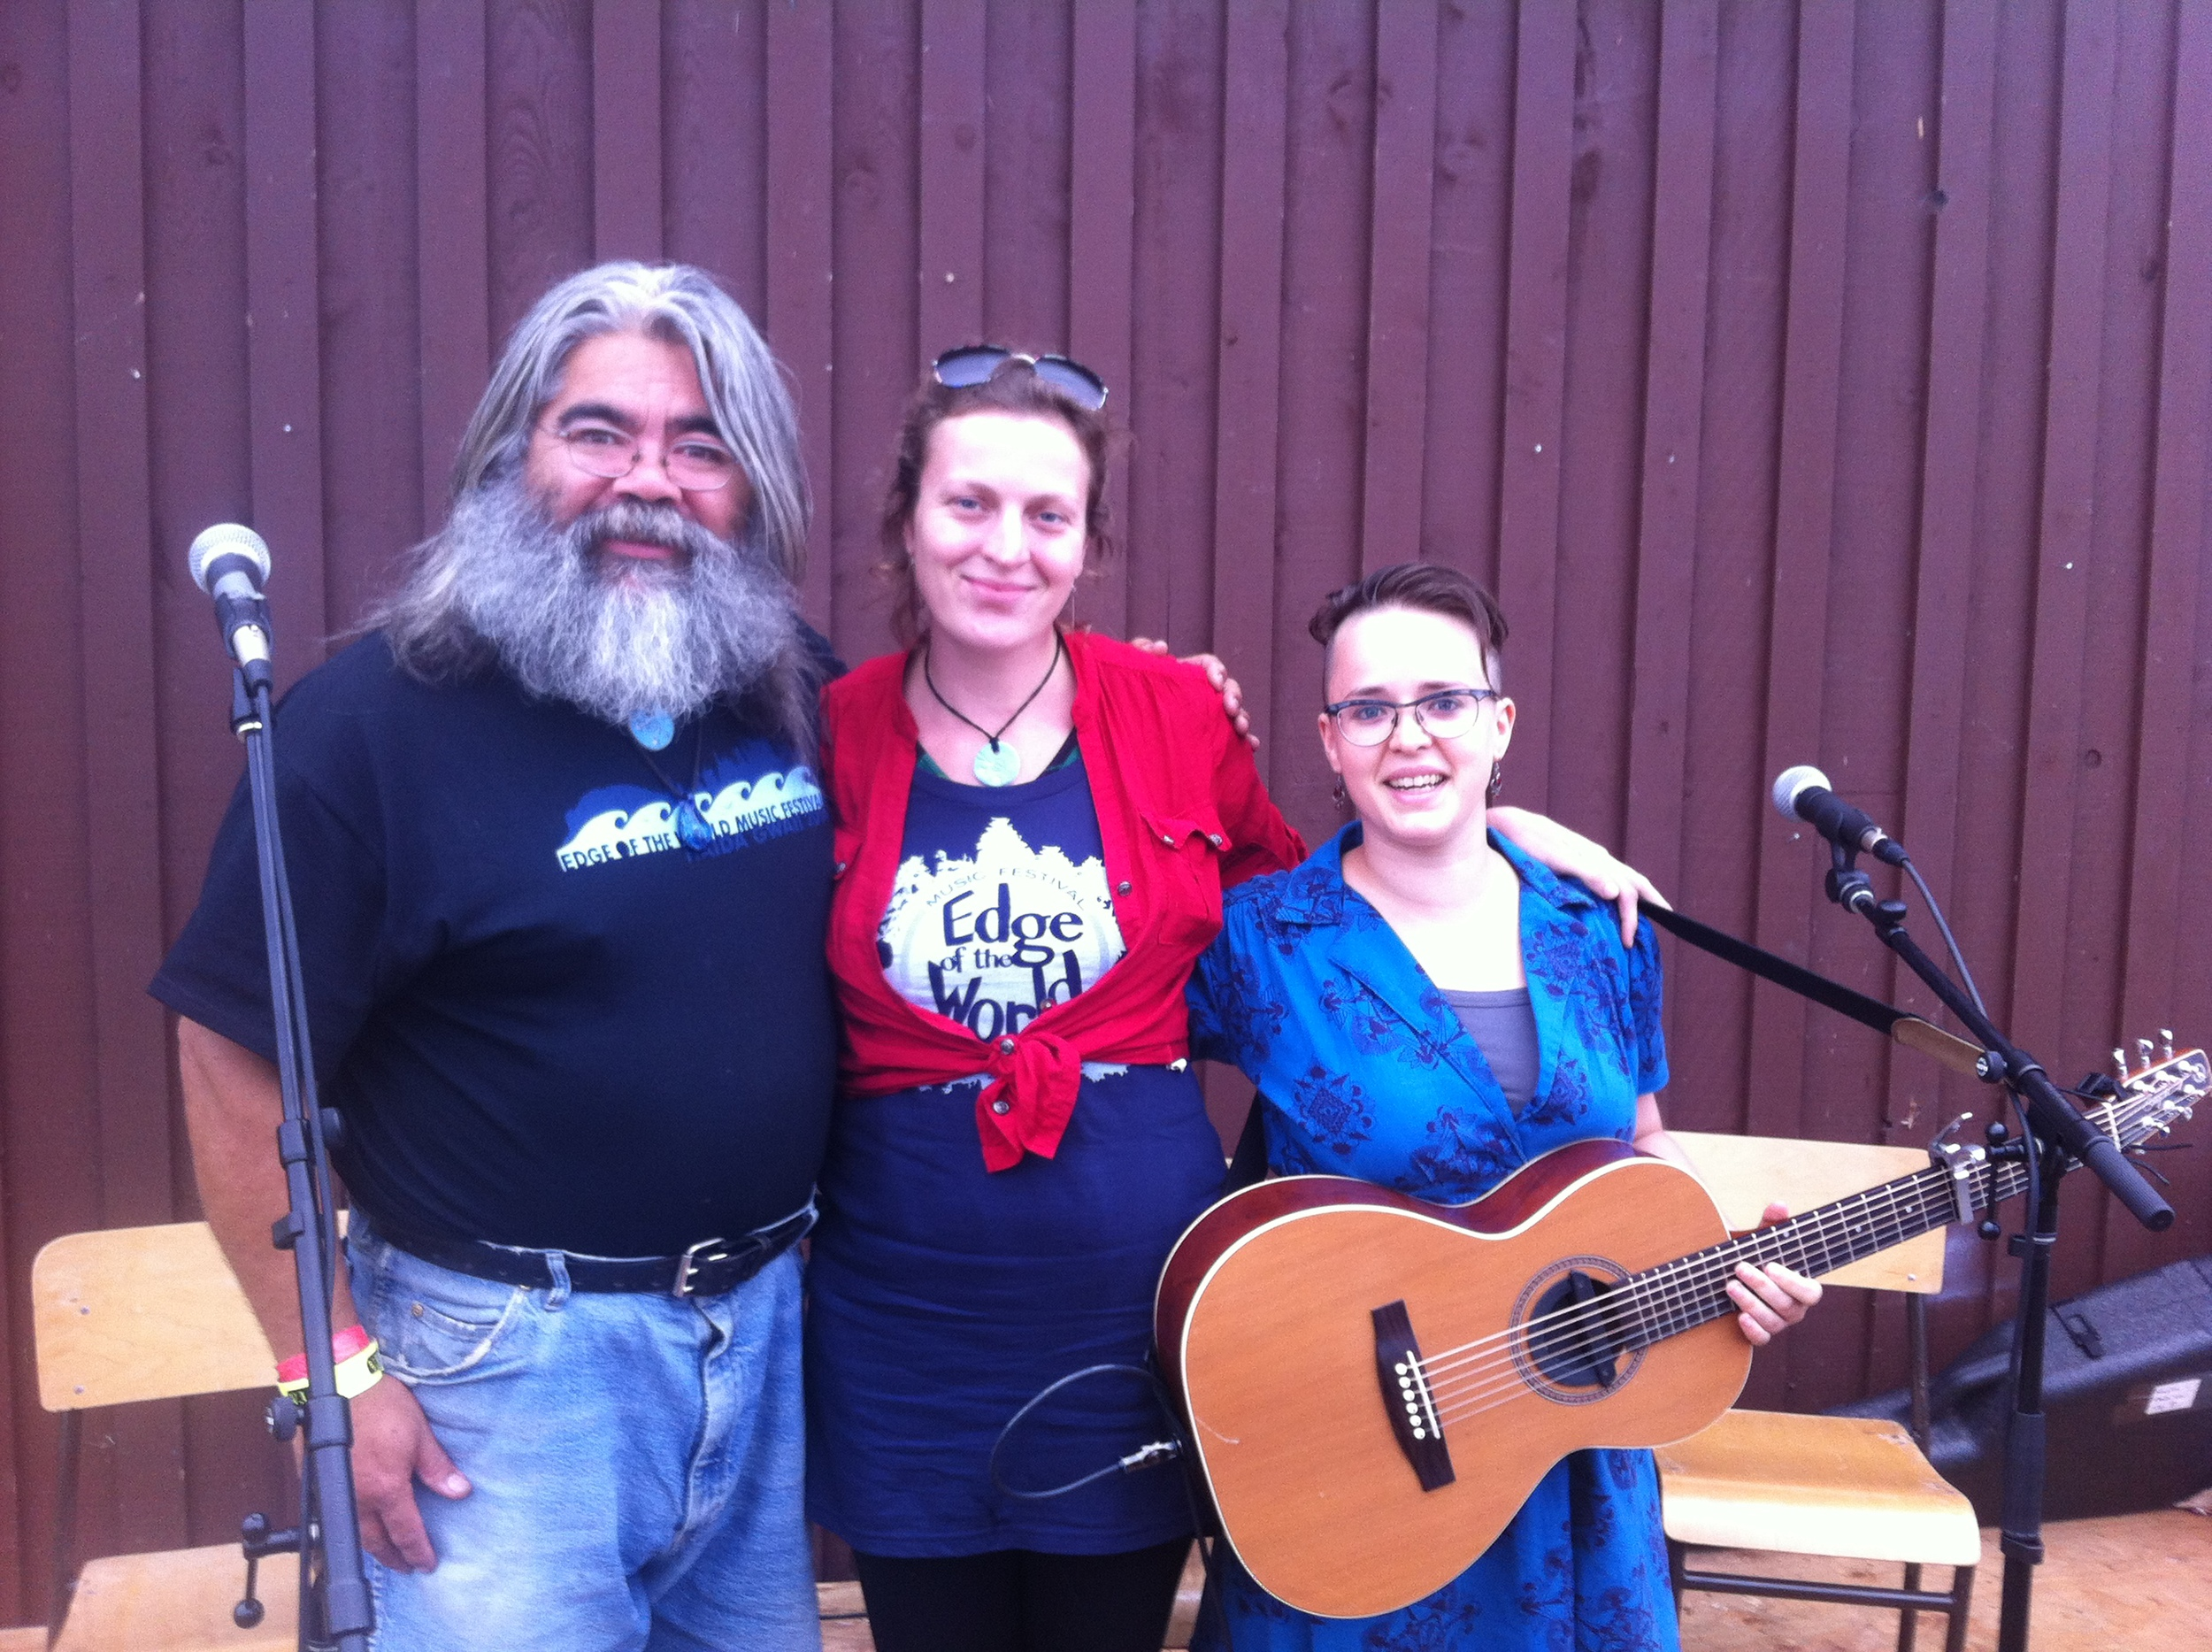 Edge of the World Festival, Workshop stage  With the fantastic Doug Koyama and Thereza Tomek!  - Haida Gwaii, BC